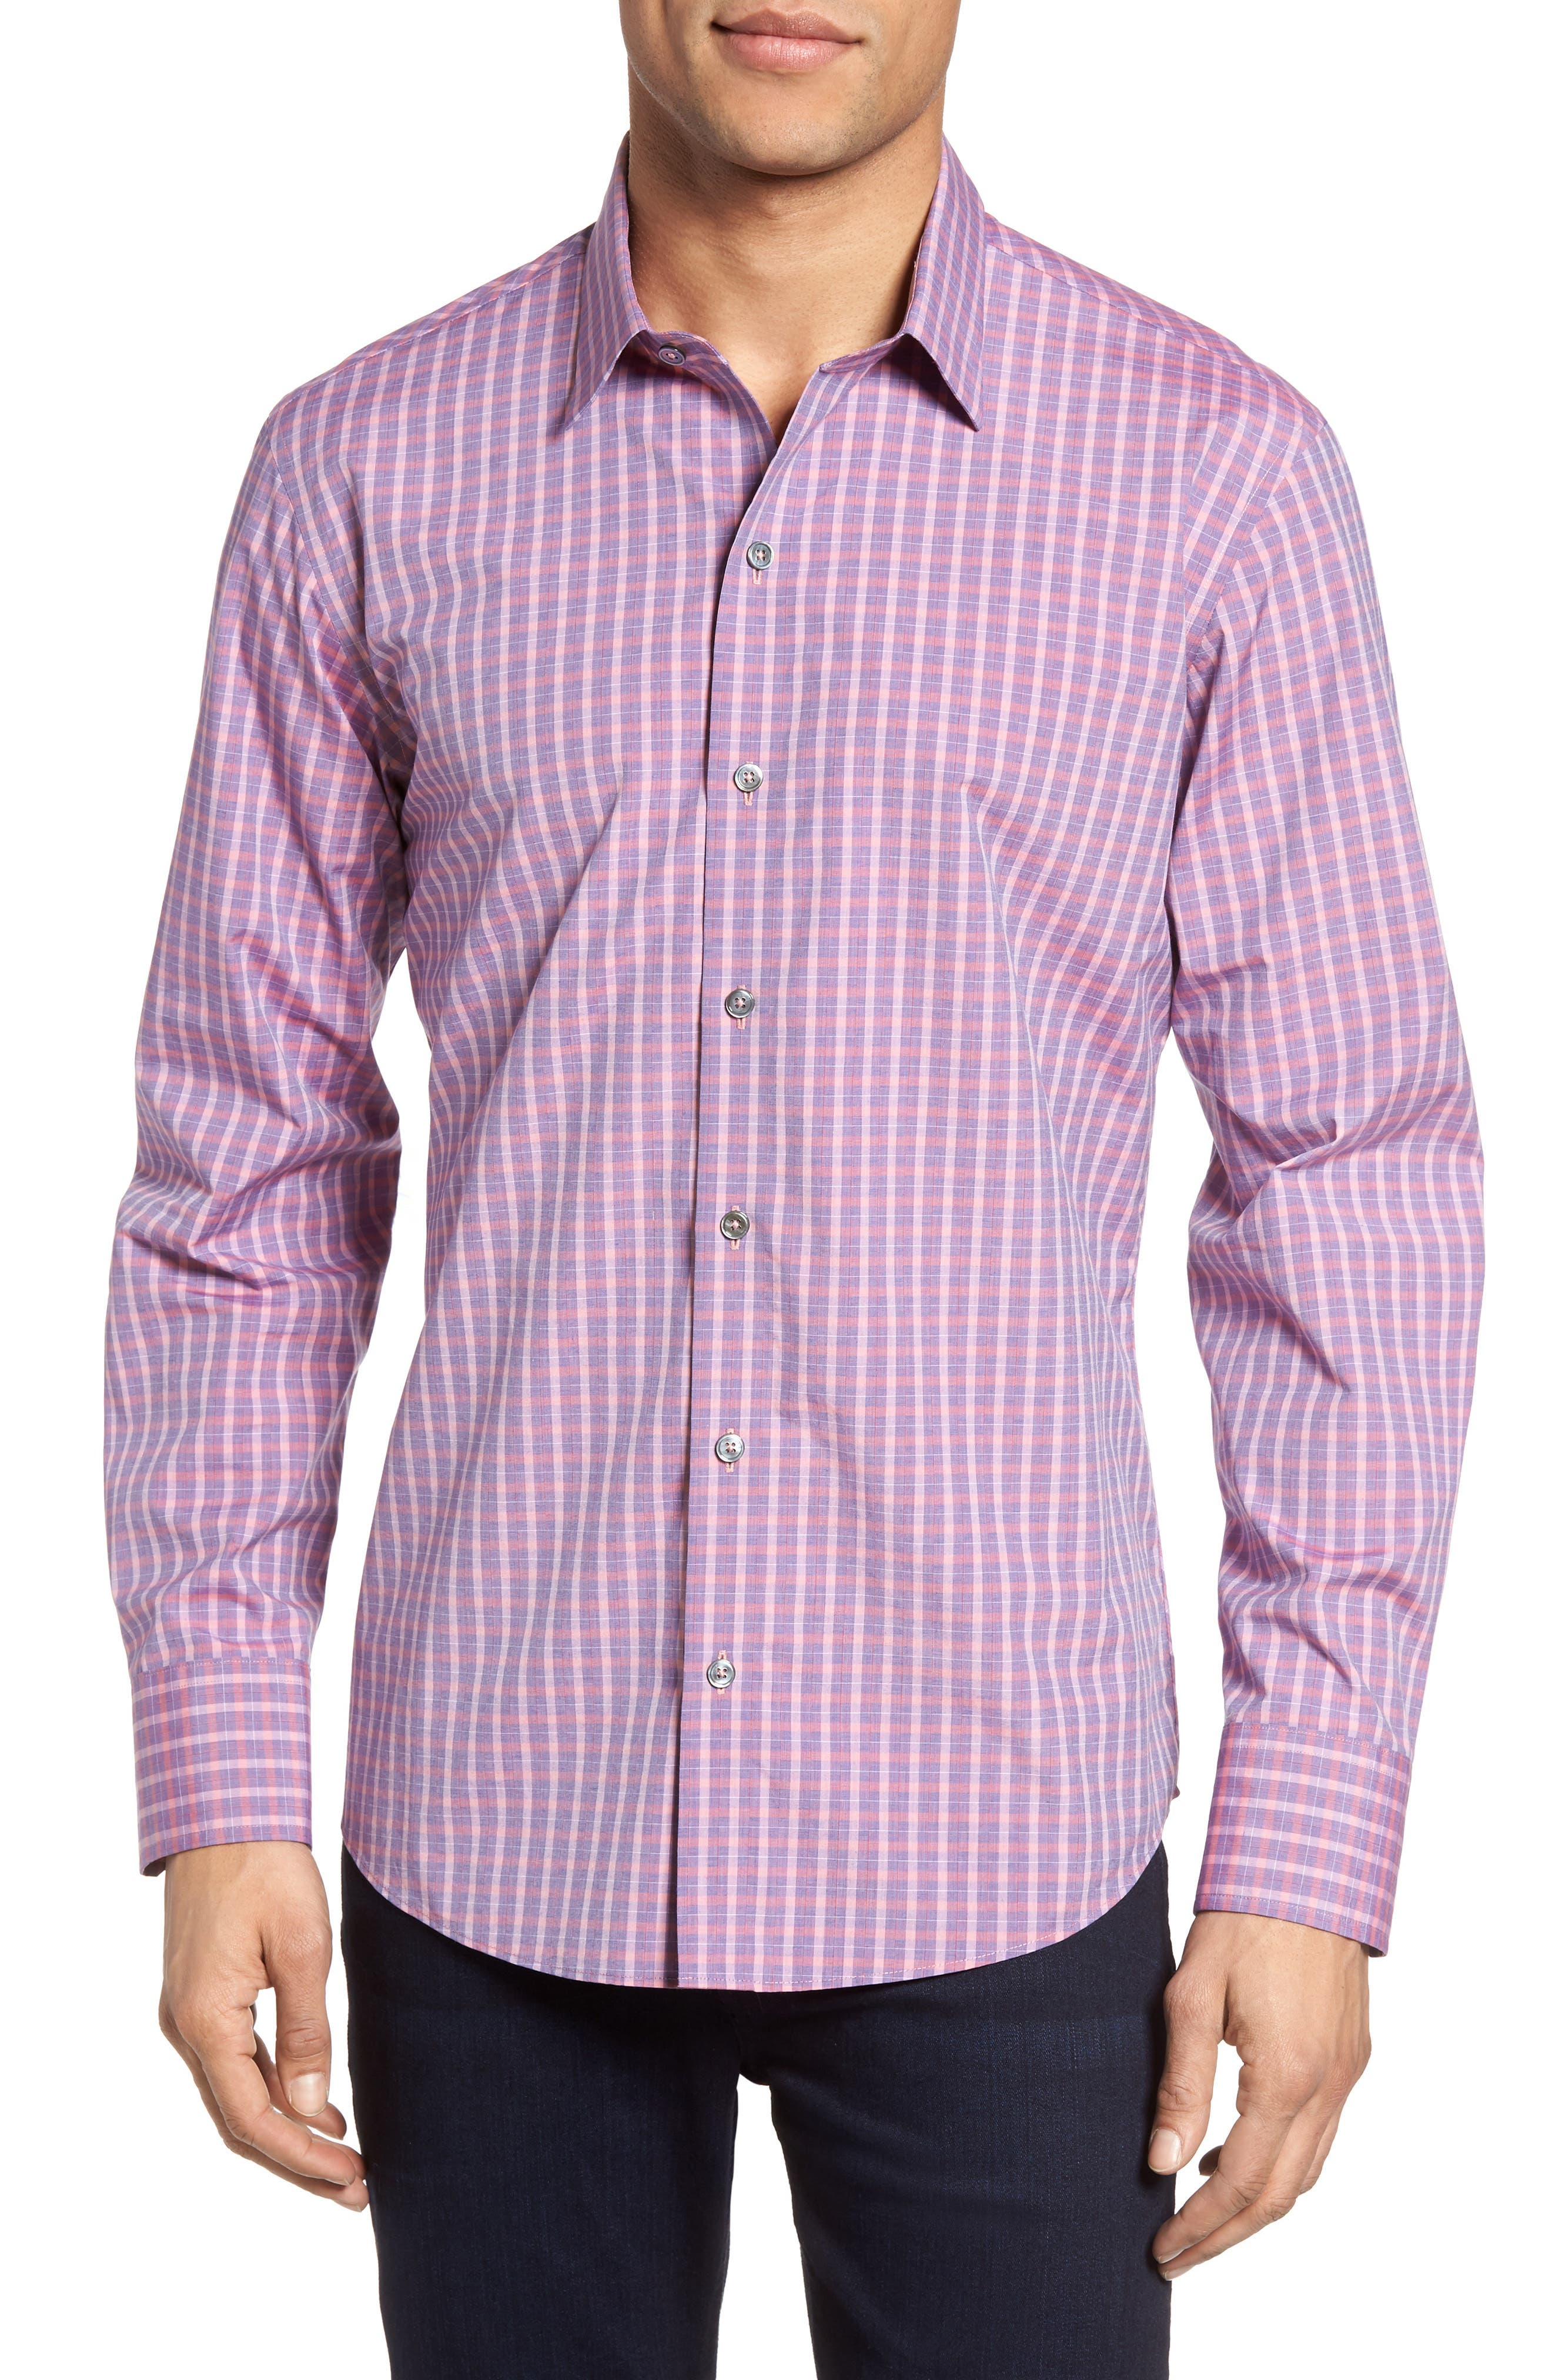 Alternate Image 1 Selected - Zachary Prell Trim Fit Plaid Sport Shirt